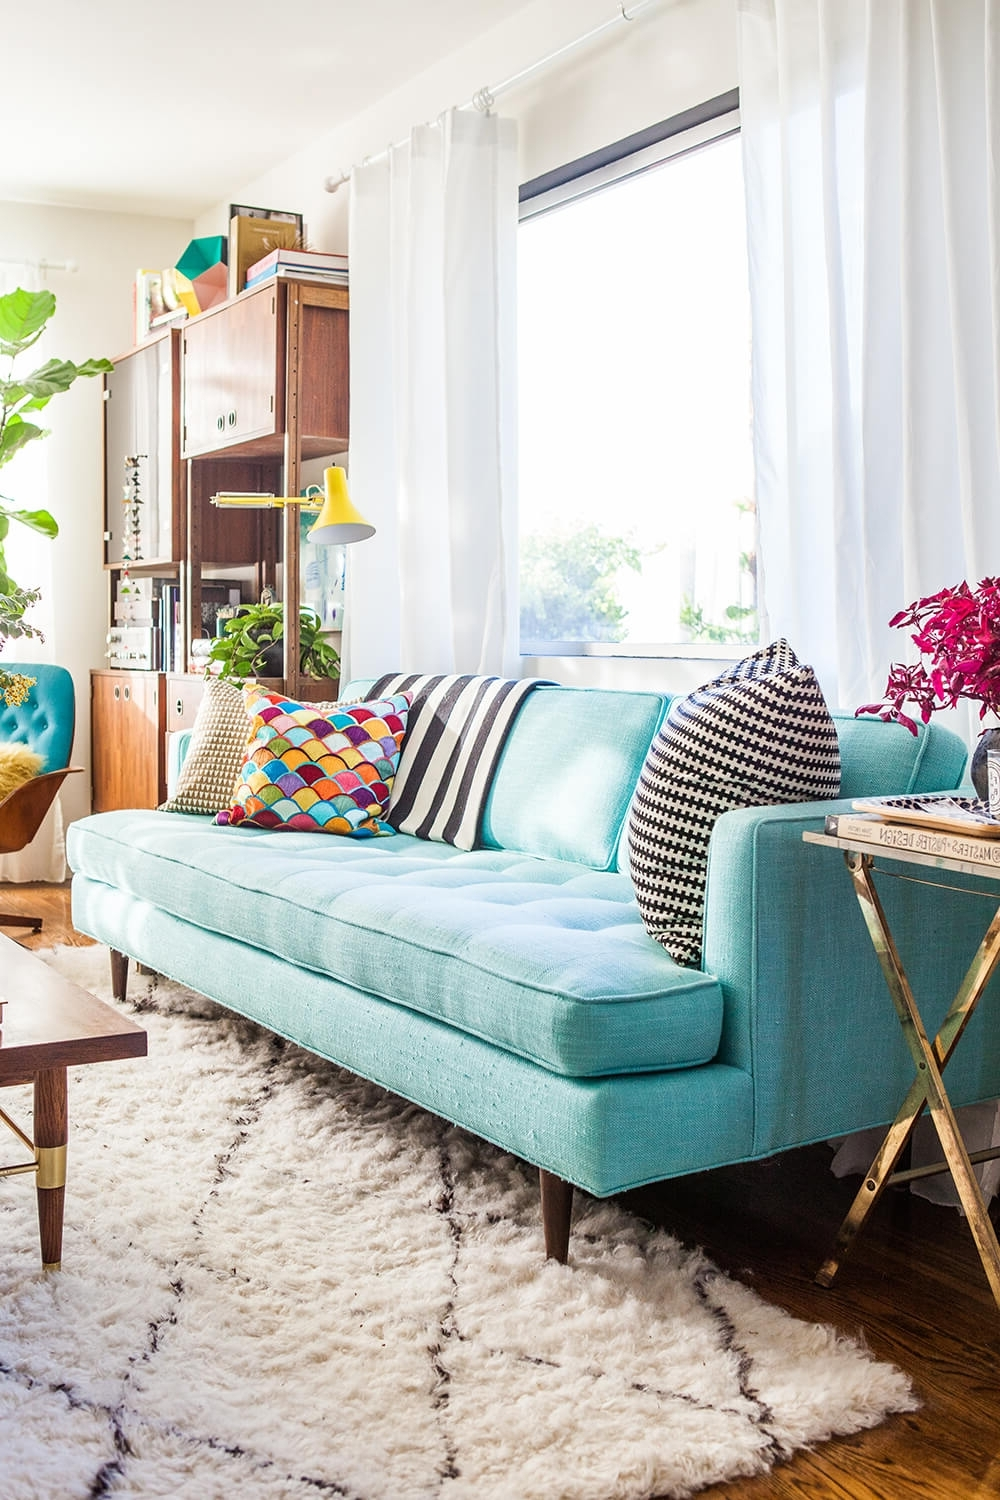 Best And Newest Sectional Sofas Under 1000 Throughout 84 Affordable Amazing Sofas Under $1000 – Emily Henderson (View 14 of 15)